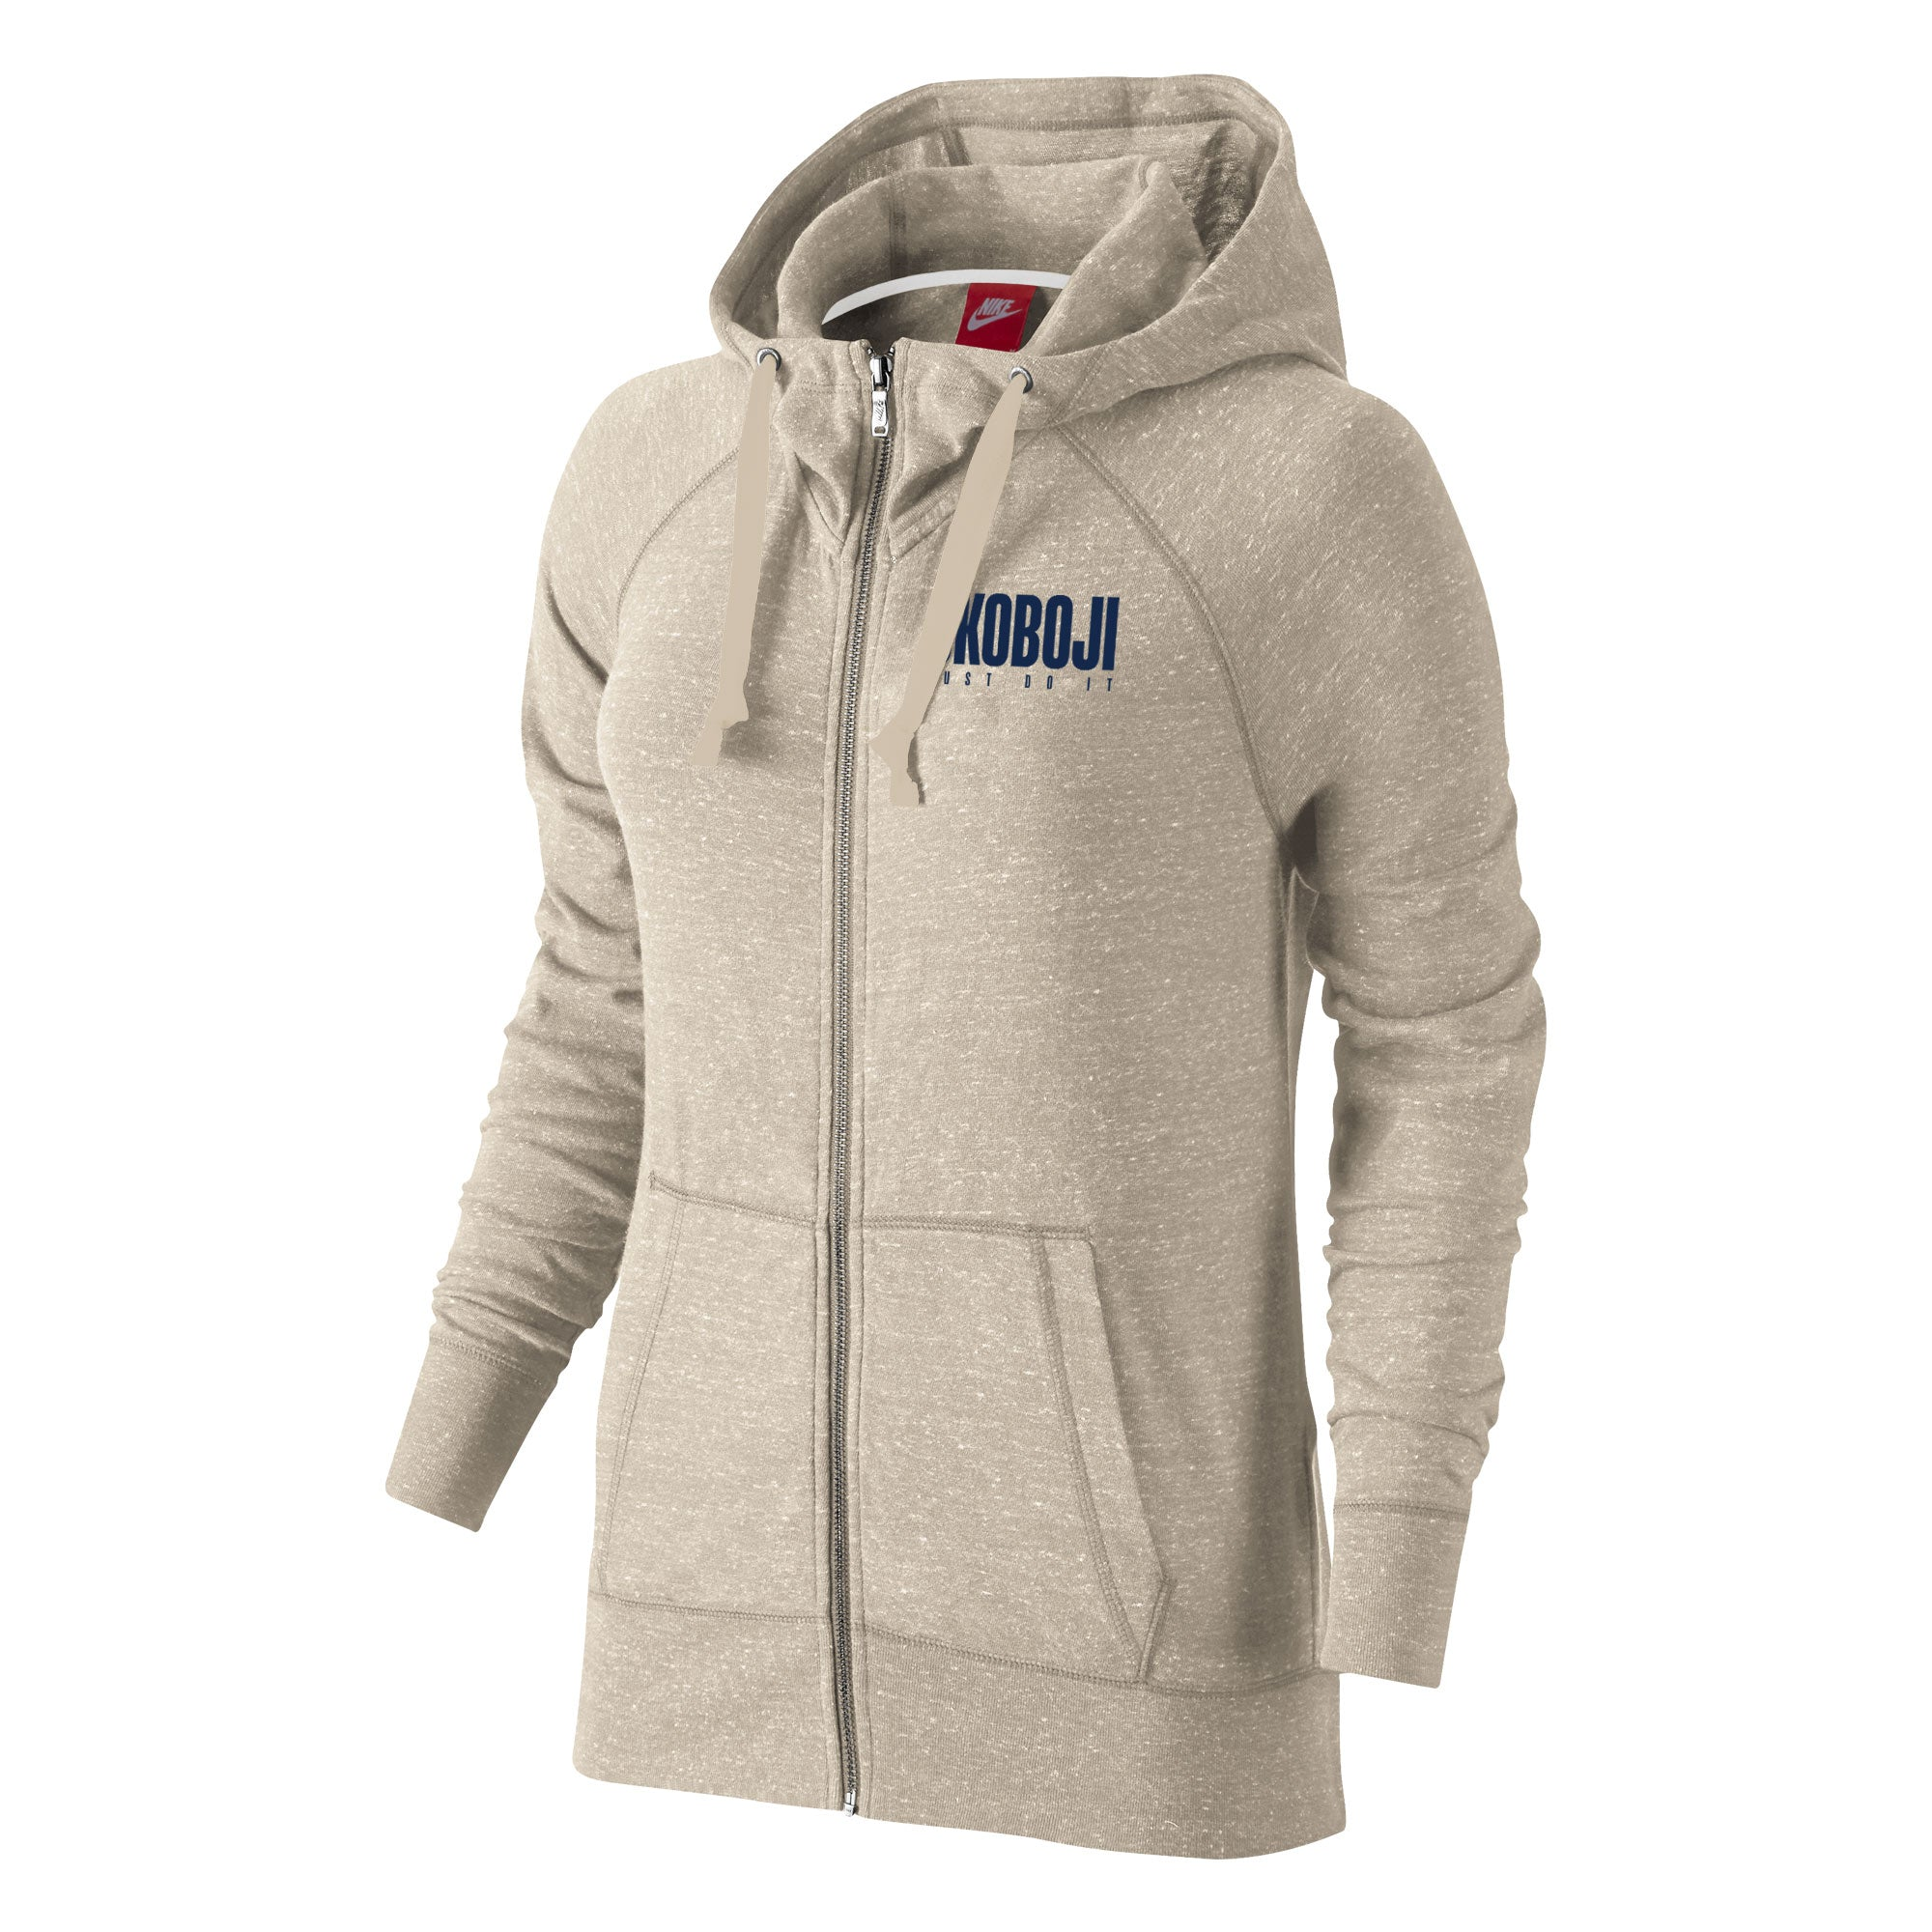 Okoboji Gym Vintage Full Zip - Oatmeal Heather